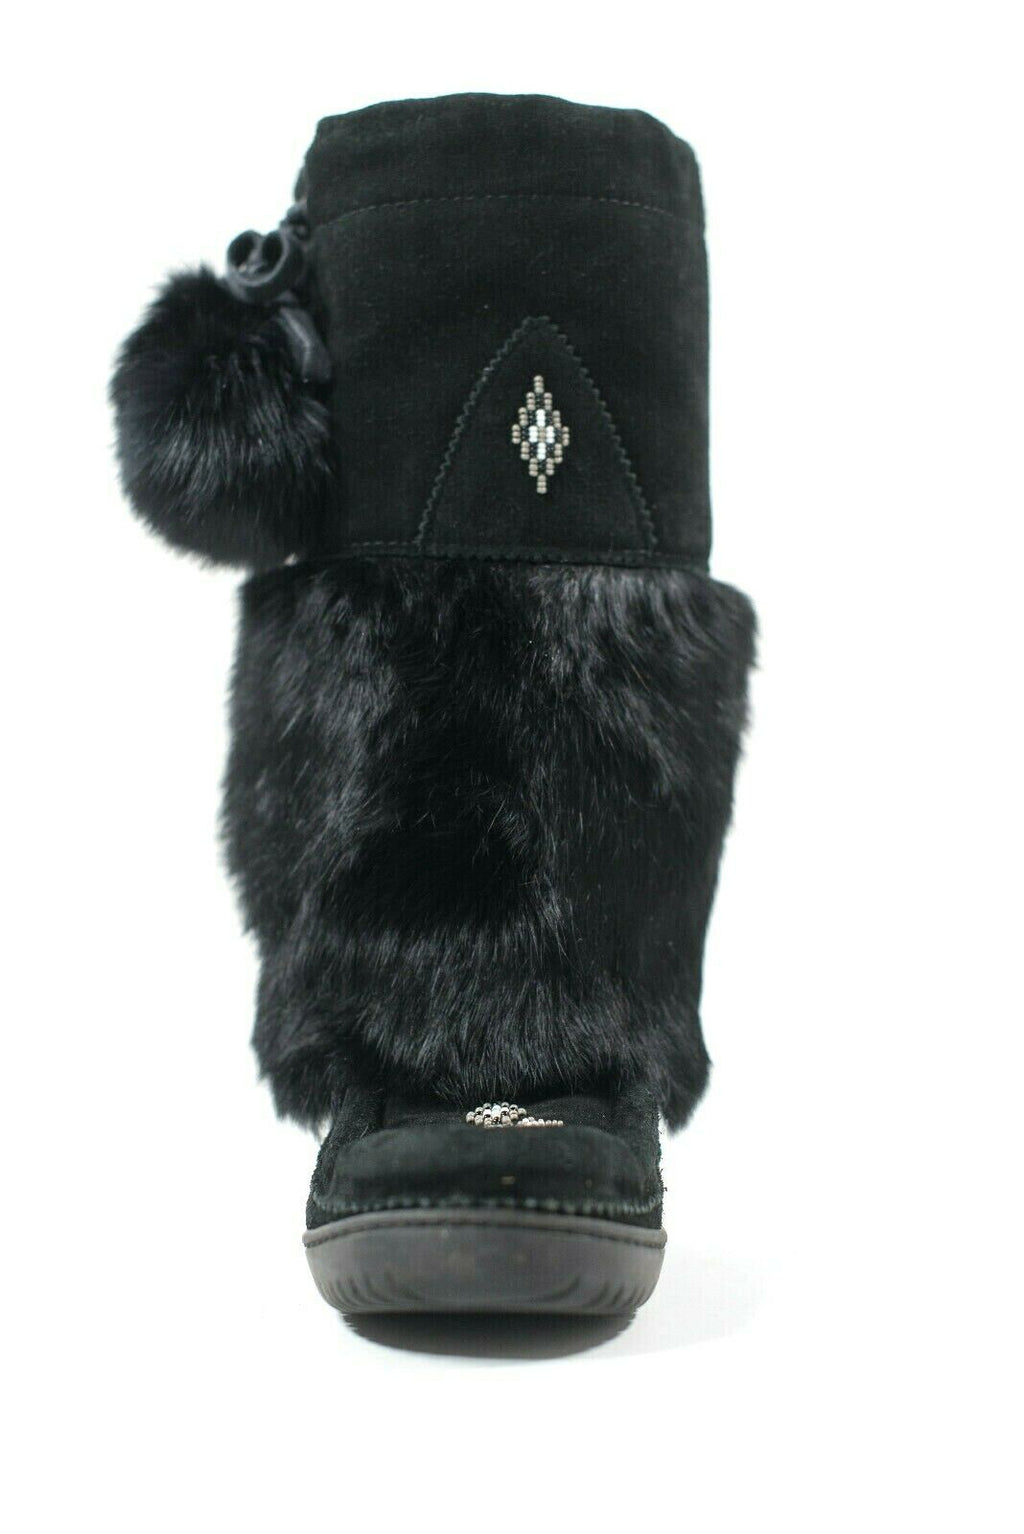 Manitobah Mukluks Womens 7 Black Boots Fur Waterproof Moccasin Beaded Snowy Owl